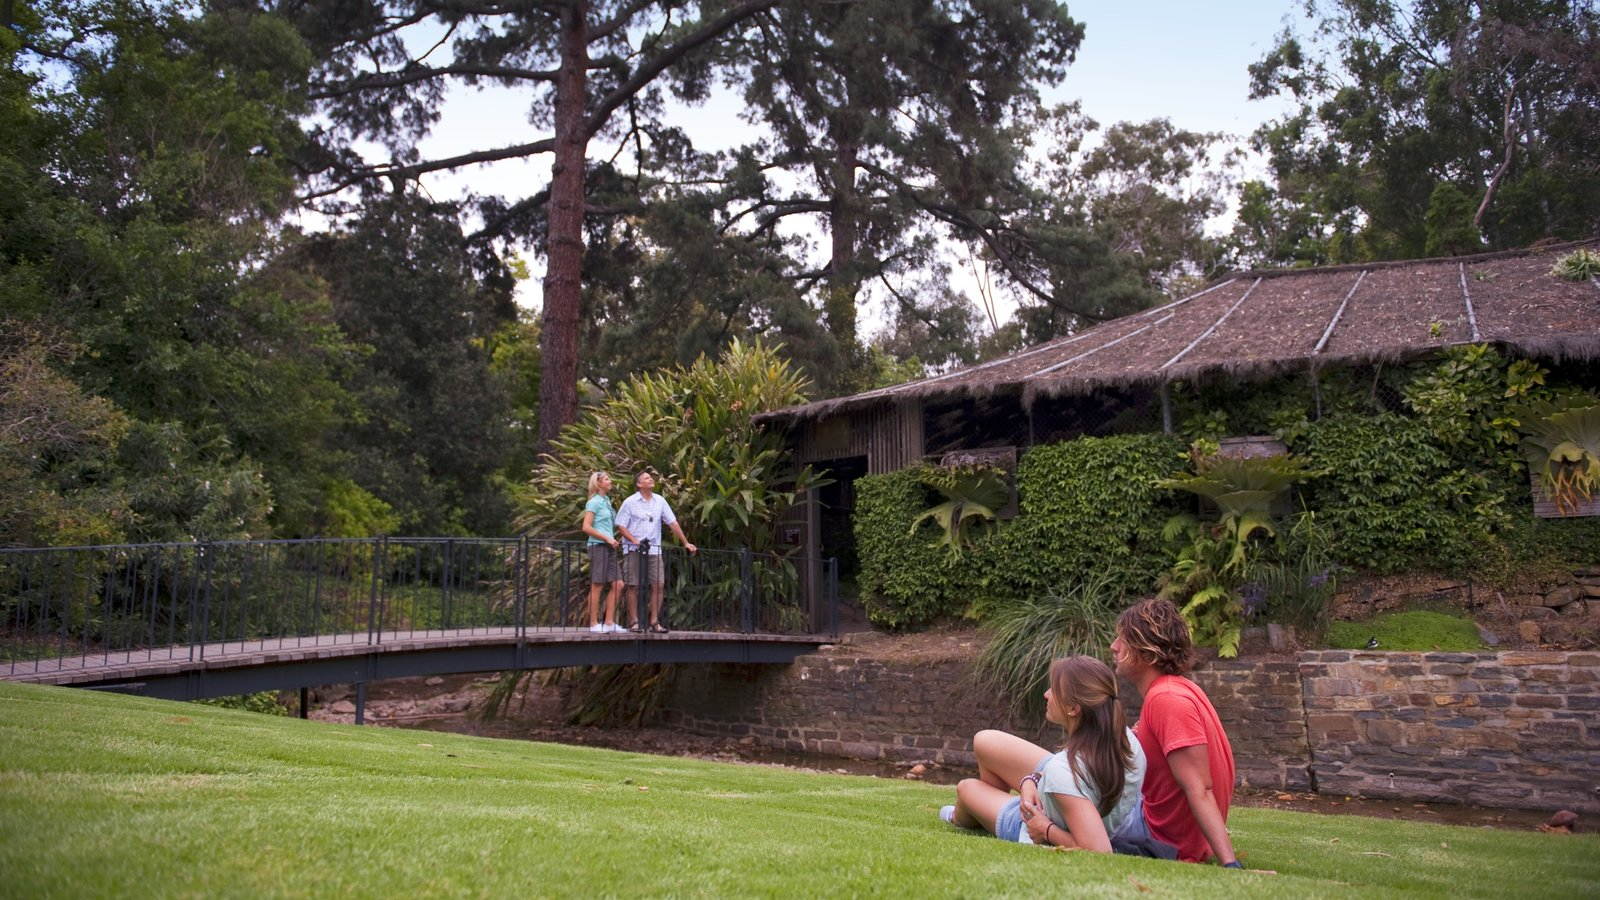 Adelaide Botanic Gardens which includes a garden and a bridge as well as a couple